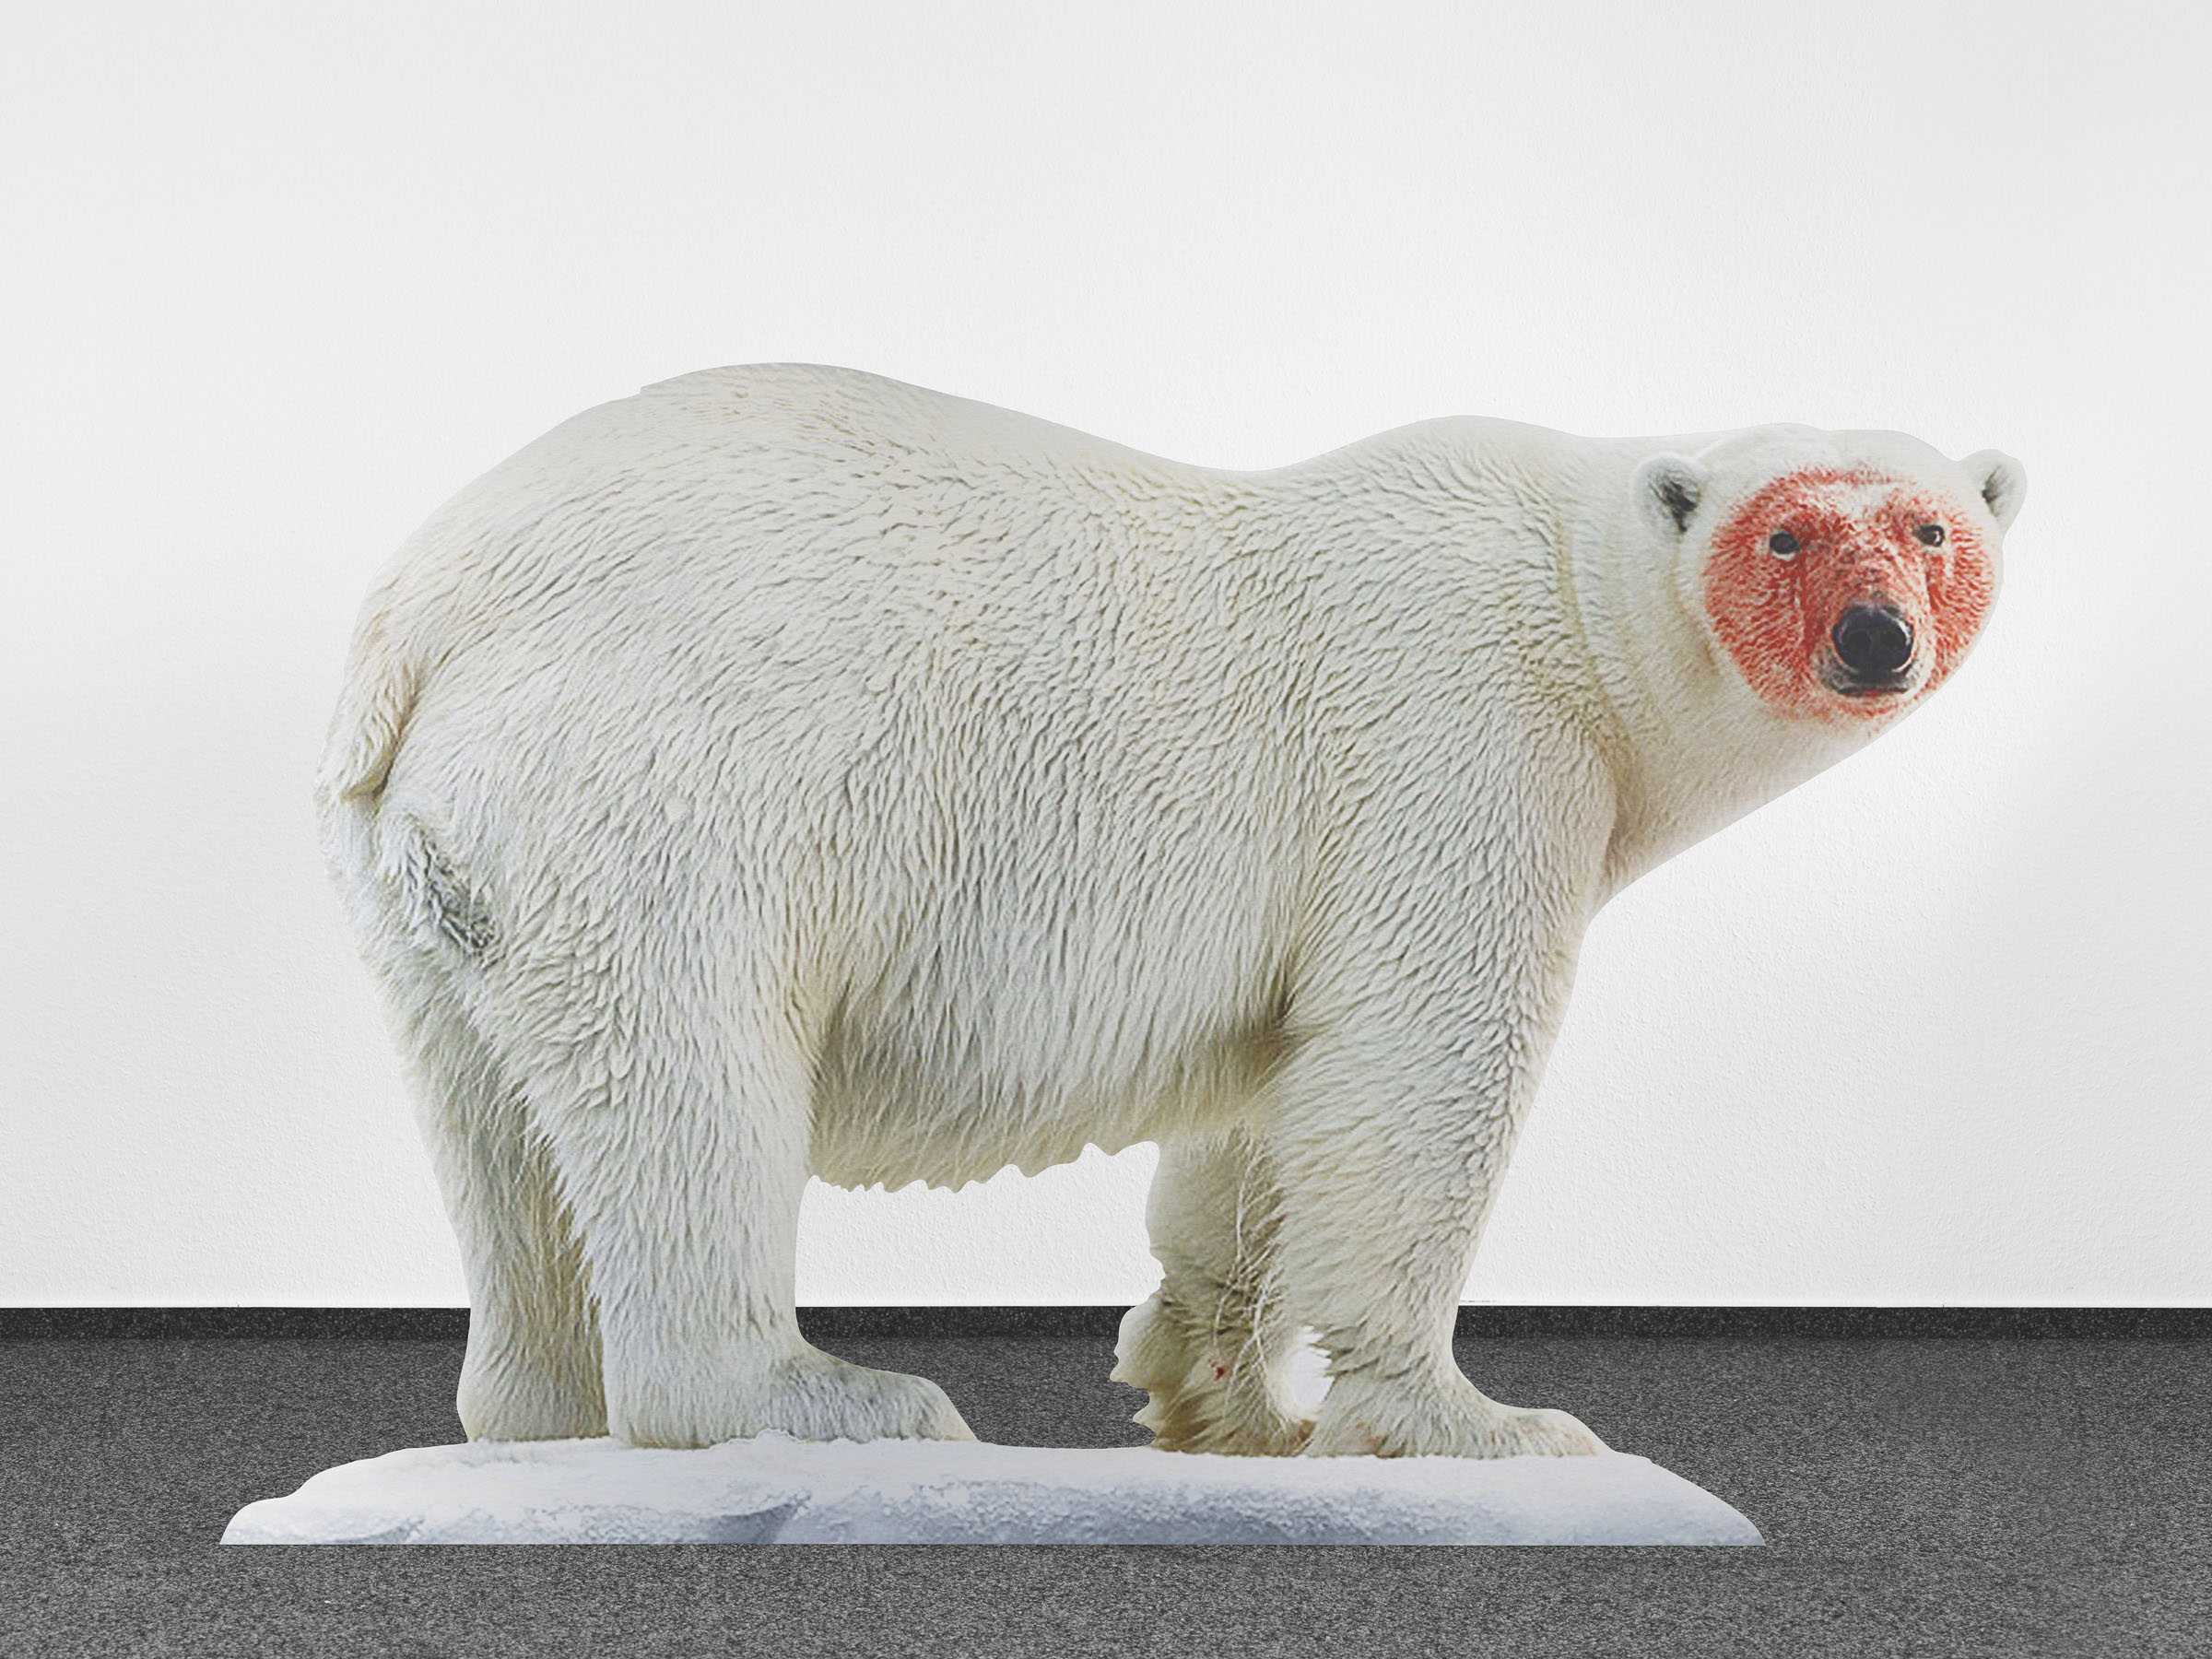 Katja Novitskova, Approximation (polar bear), 2017, Digital print on aluminum, cutout display, acrylic glass, 148x226x38 cm - Collezione Sandretto Re Rebaudengo, Torino